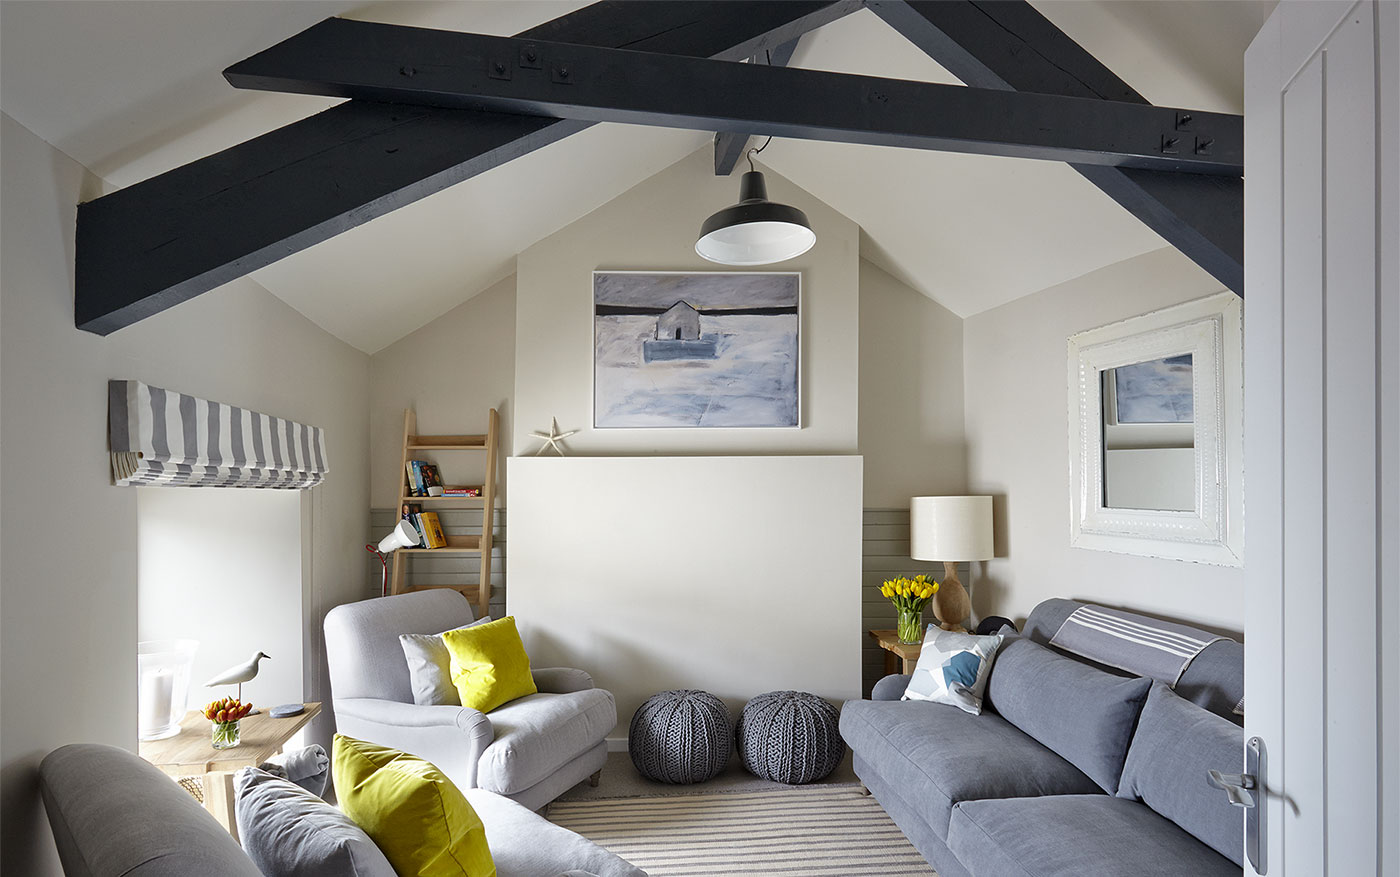 Charming coastal cottage in Porthleven, Cornwall with feature painted beams.